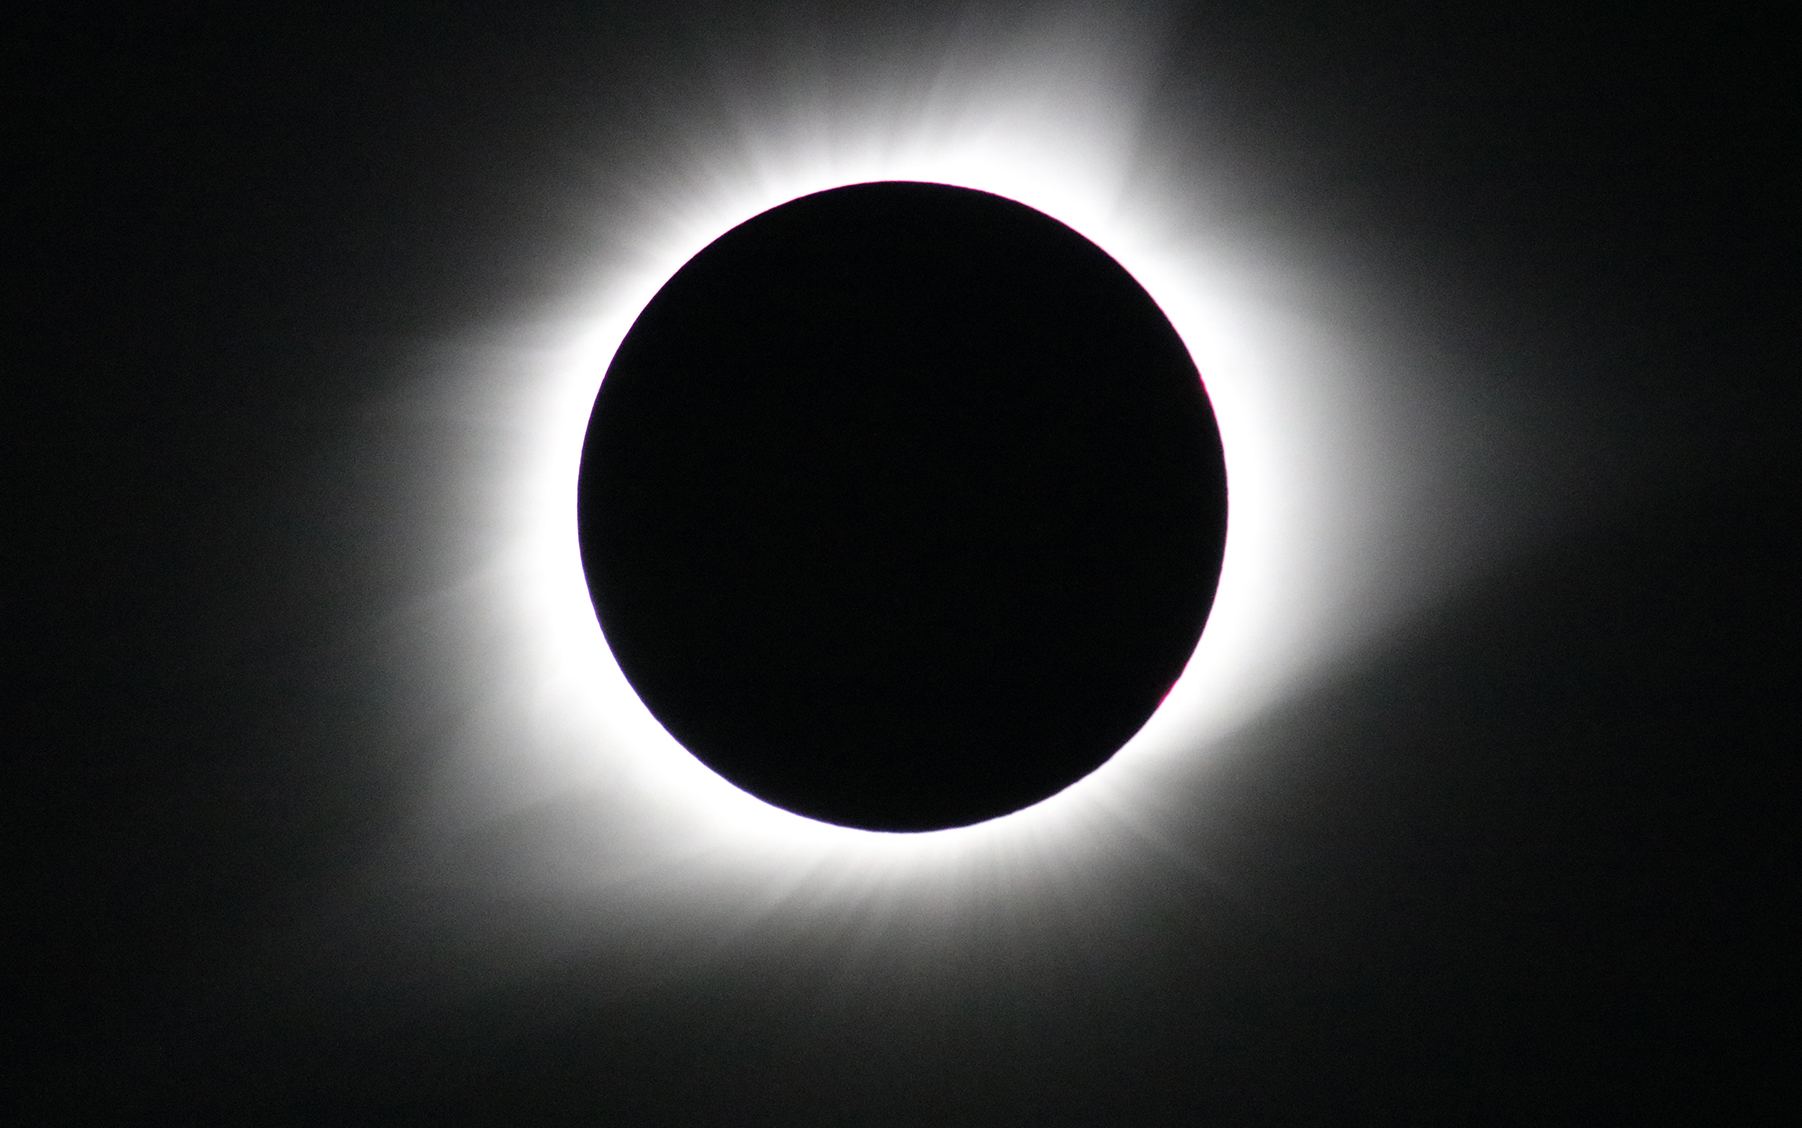 Photo of August 21, 2017 total solar eclipse. Credit: NASA/Gopalswamy